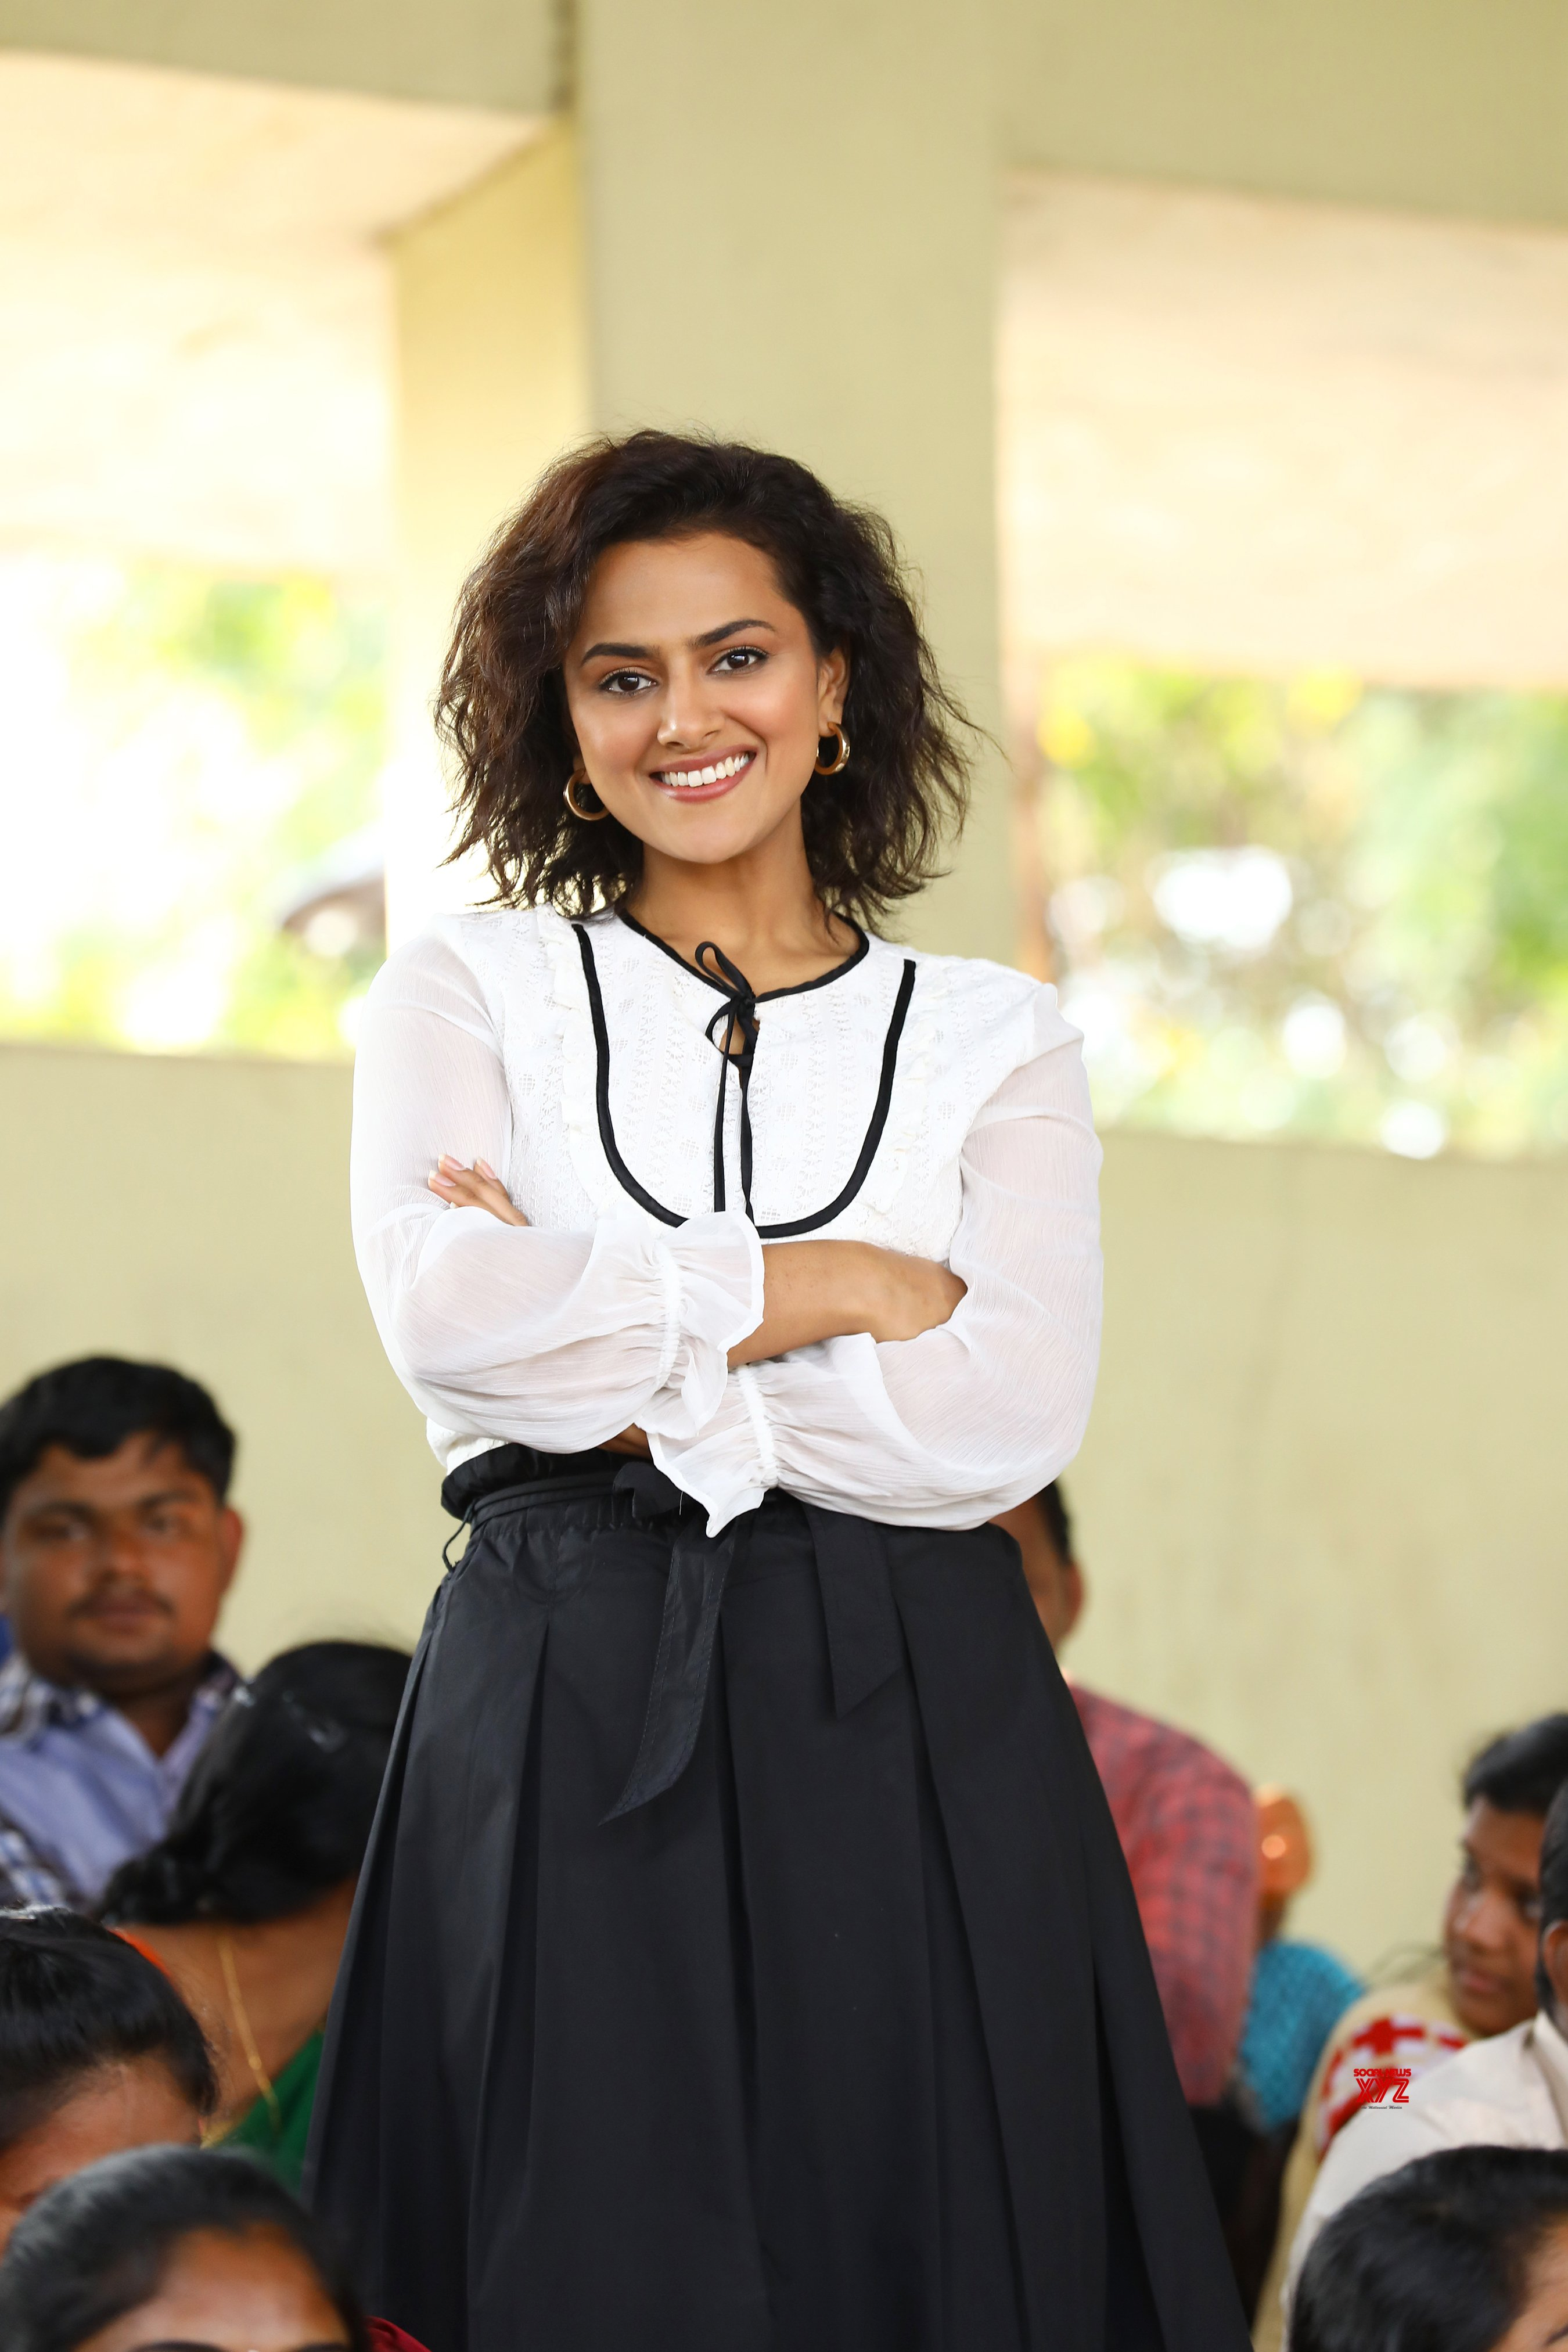 'Jersey' is filled with honest emotions: Shraddha Srinath